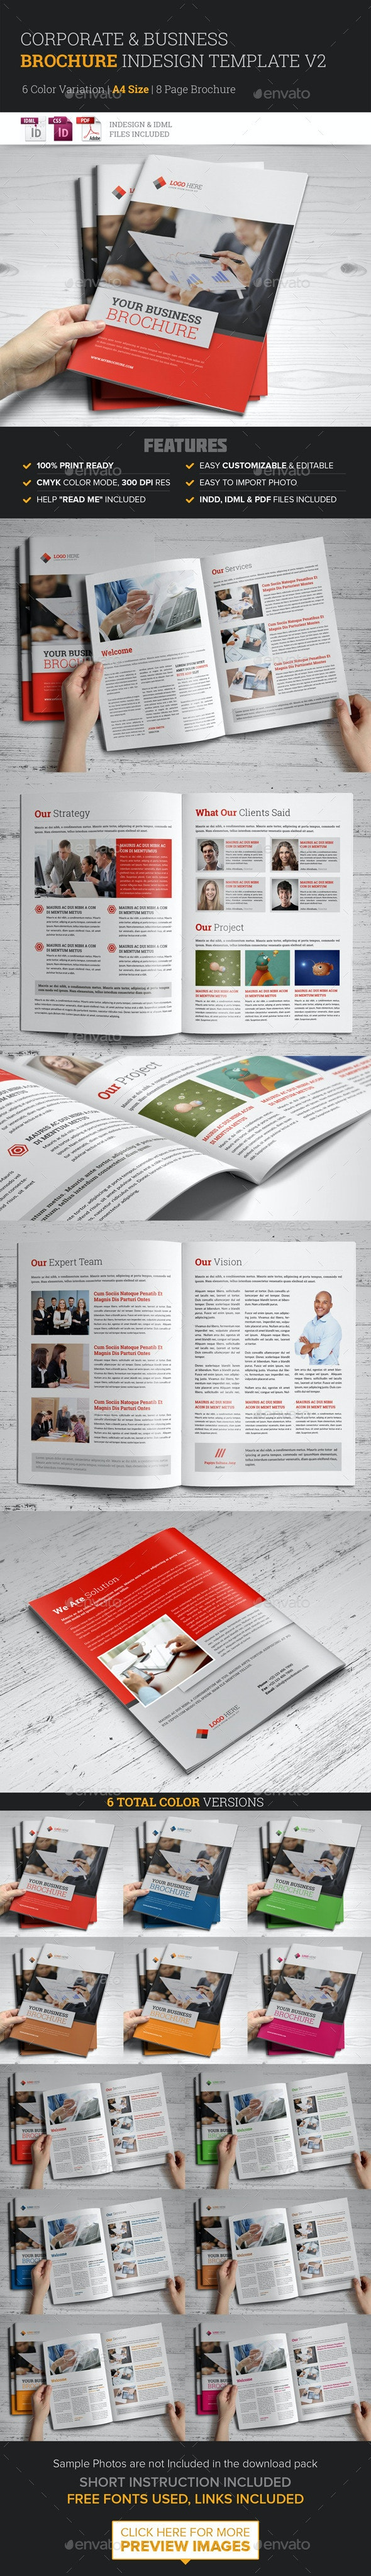 Corporate Multipurpose Brochure InDesign Template v2 - Corporate Brochures